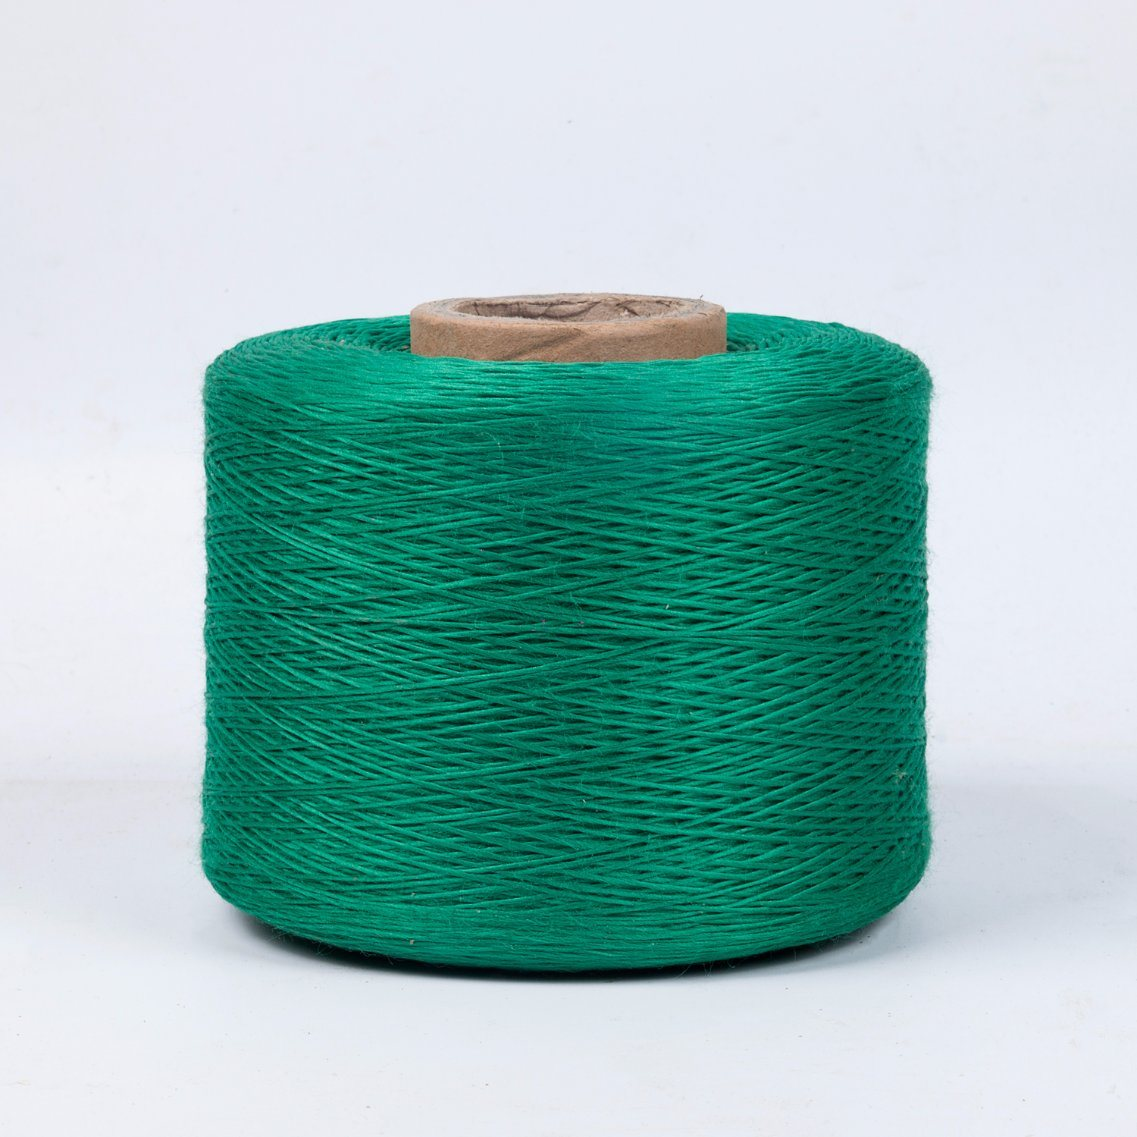 Sturdy Green Polyester Firm Yarn for Cable